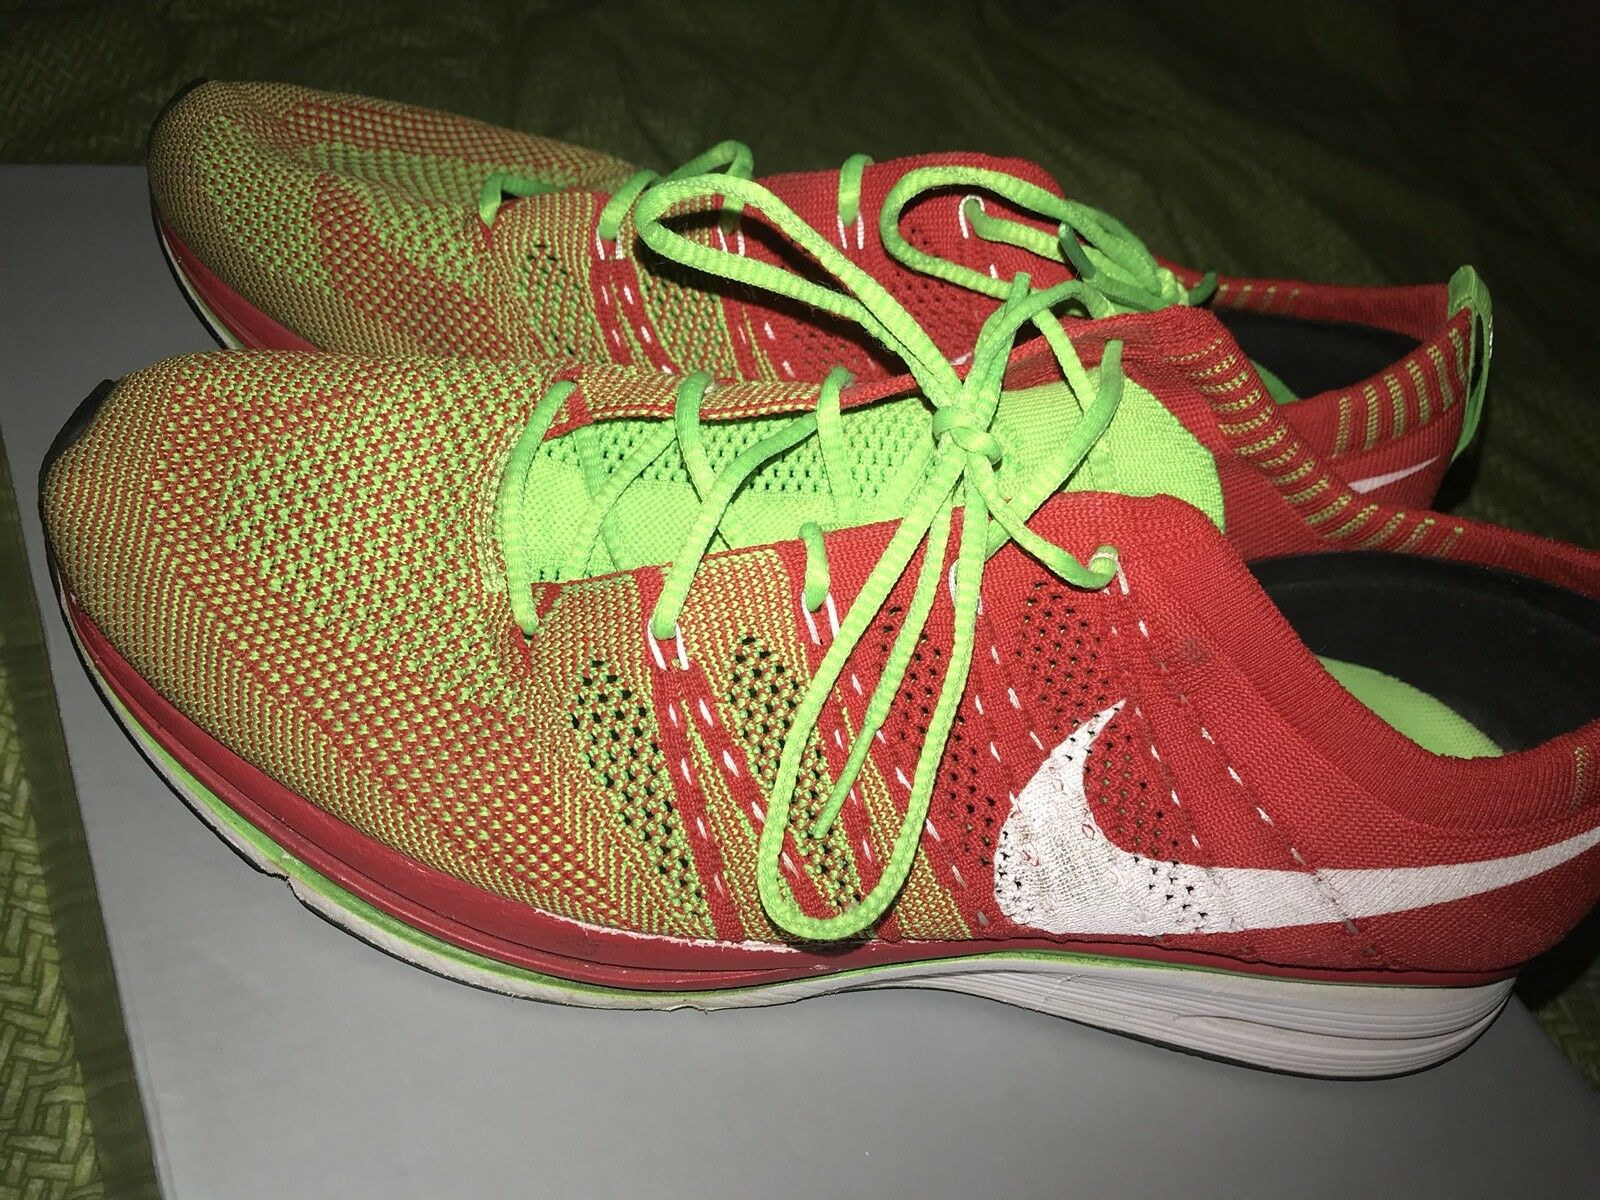 Nike Fly Knit Trainer Electric Green  RedSneakers Shoes Men's Size 11 Rare